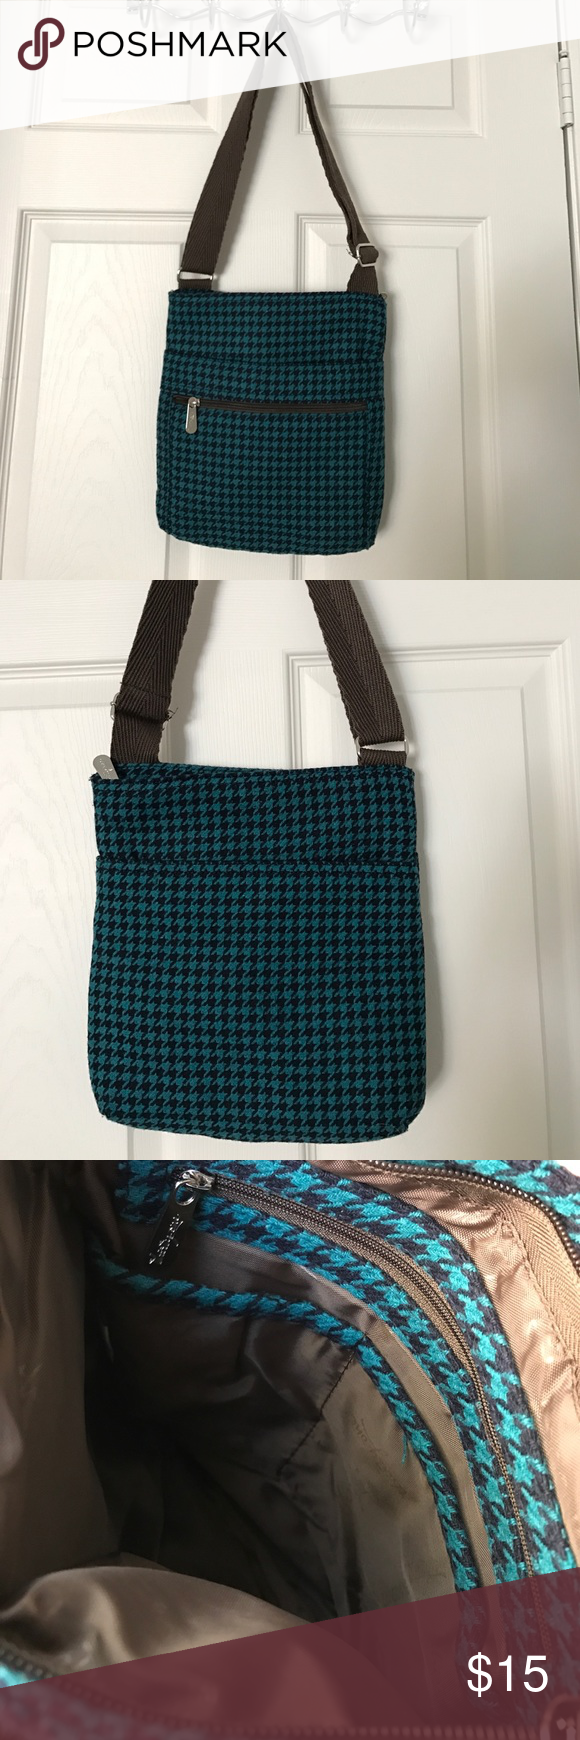 Thirty one crossbody bag Thirty One crossbody bag. Teal & navy houndstooth print all over, brown zipper and strap. Inside is brown and clean. One zippered pocket on outside, one slip pocket and main pocket is also zippered. Inside main pocket is one zippered pocket & two slip pockets. Used once. thirty one Bags Crossbody Bags